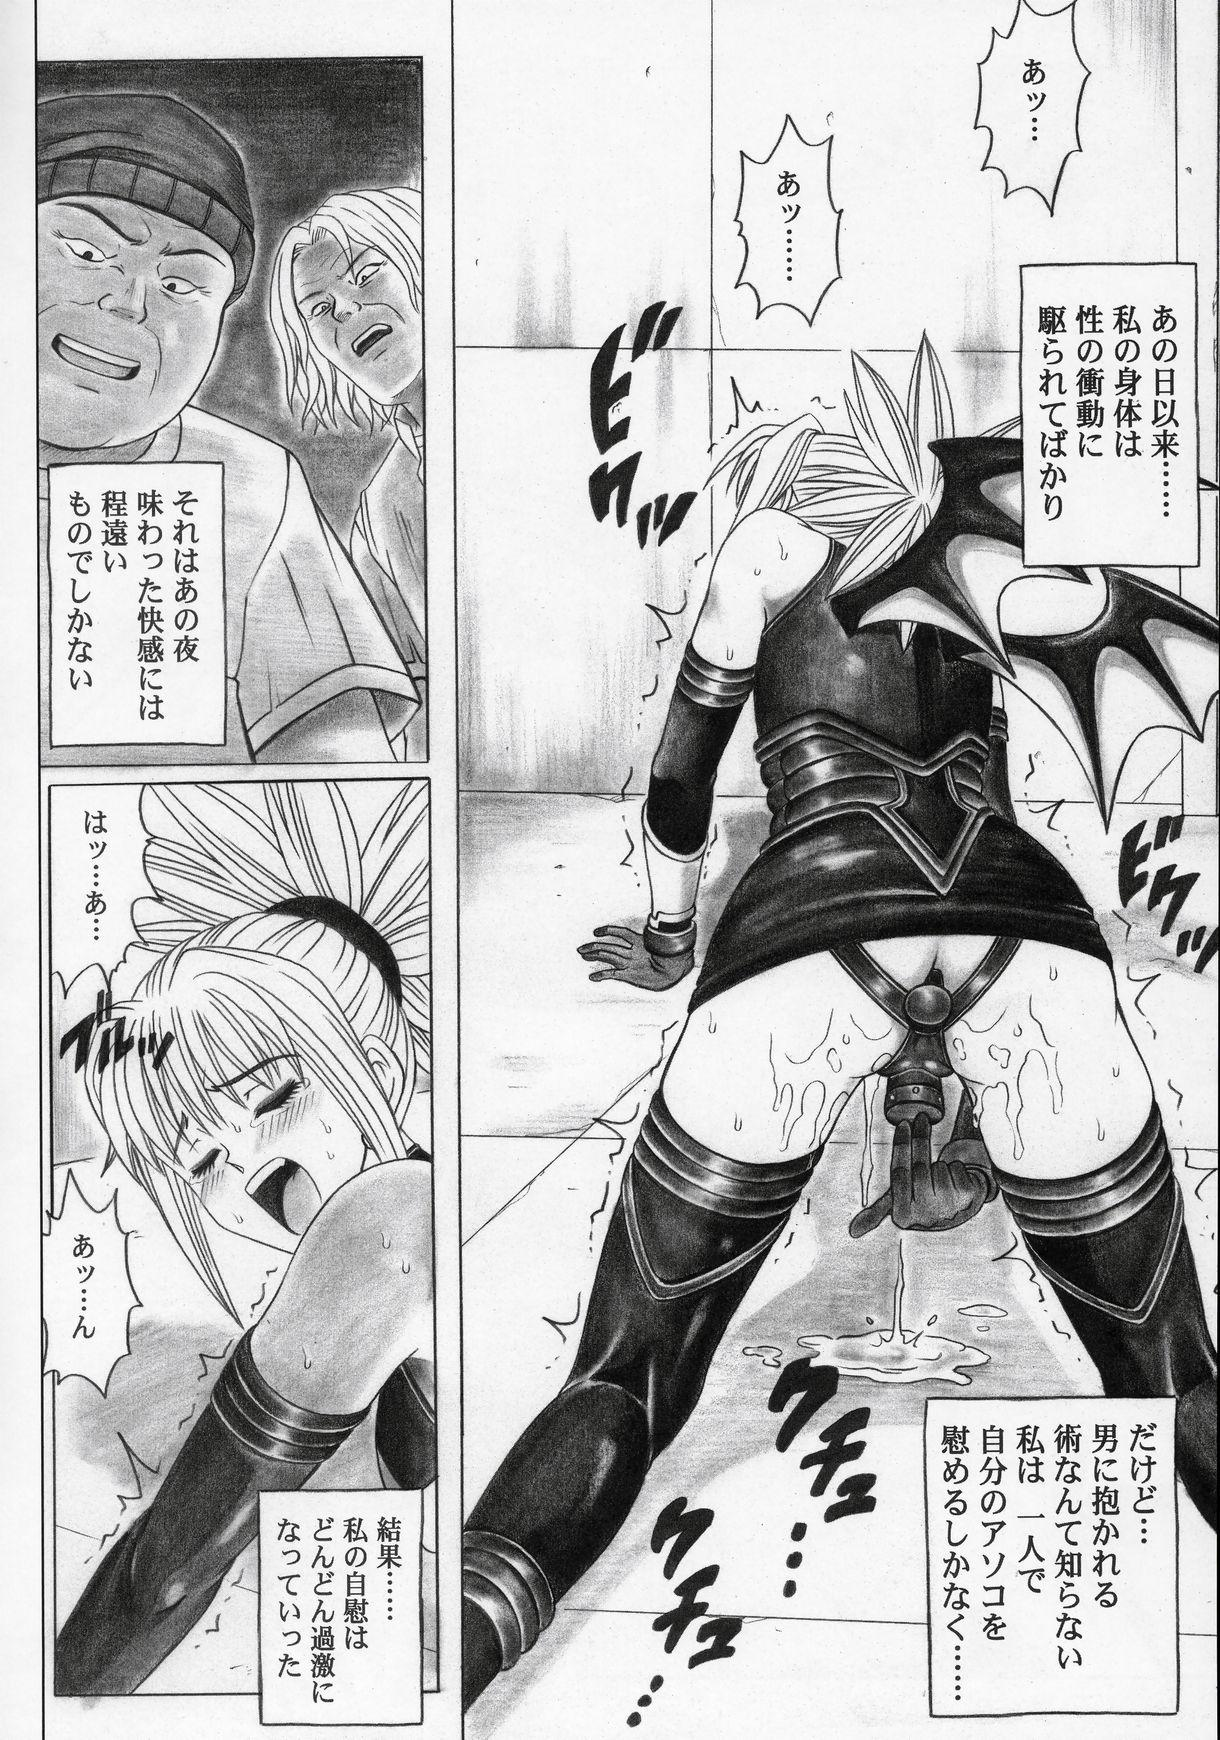 Rogue Spear 5 36